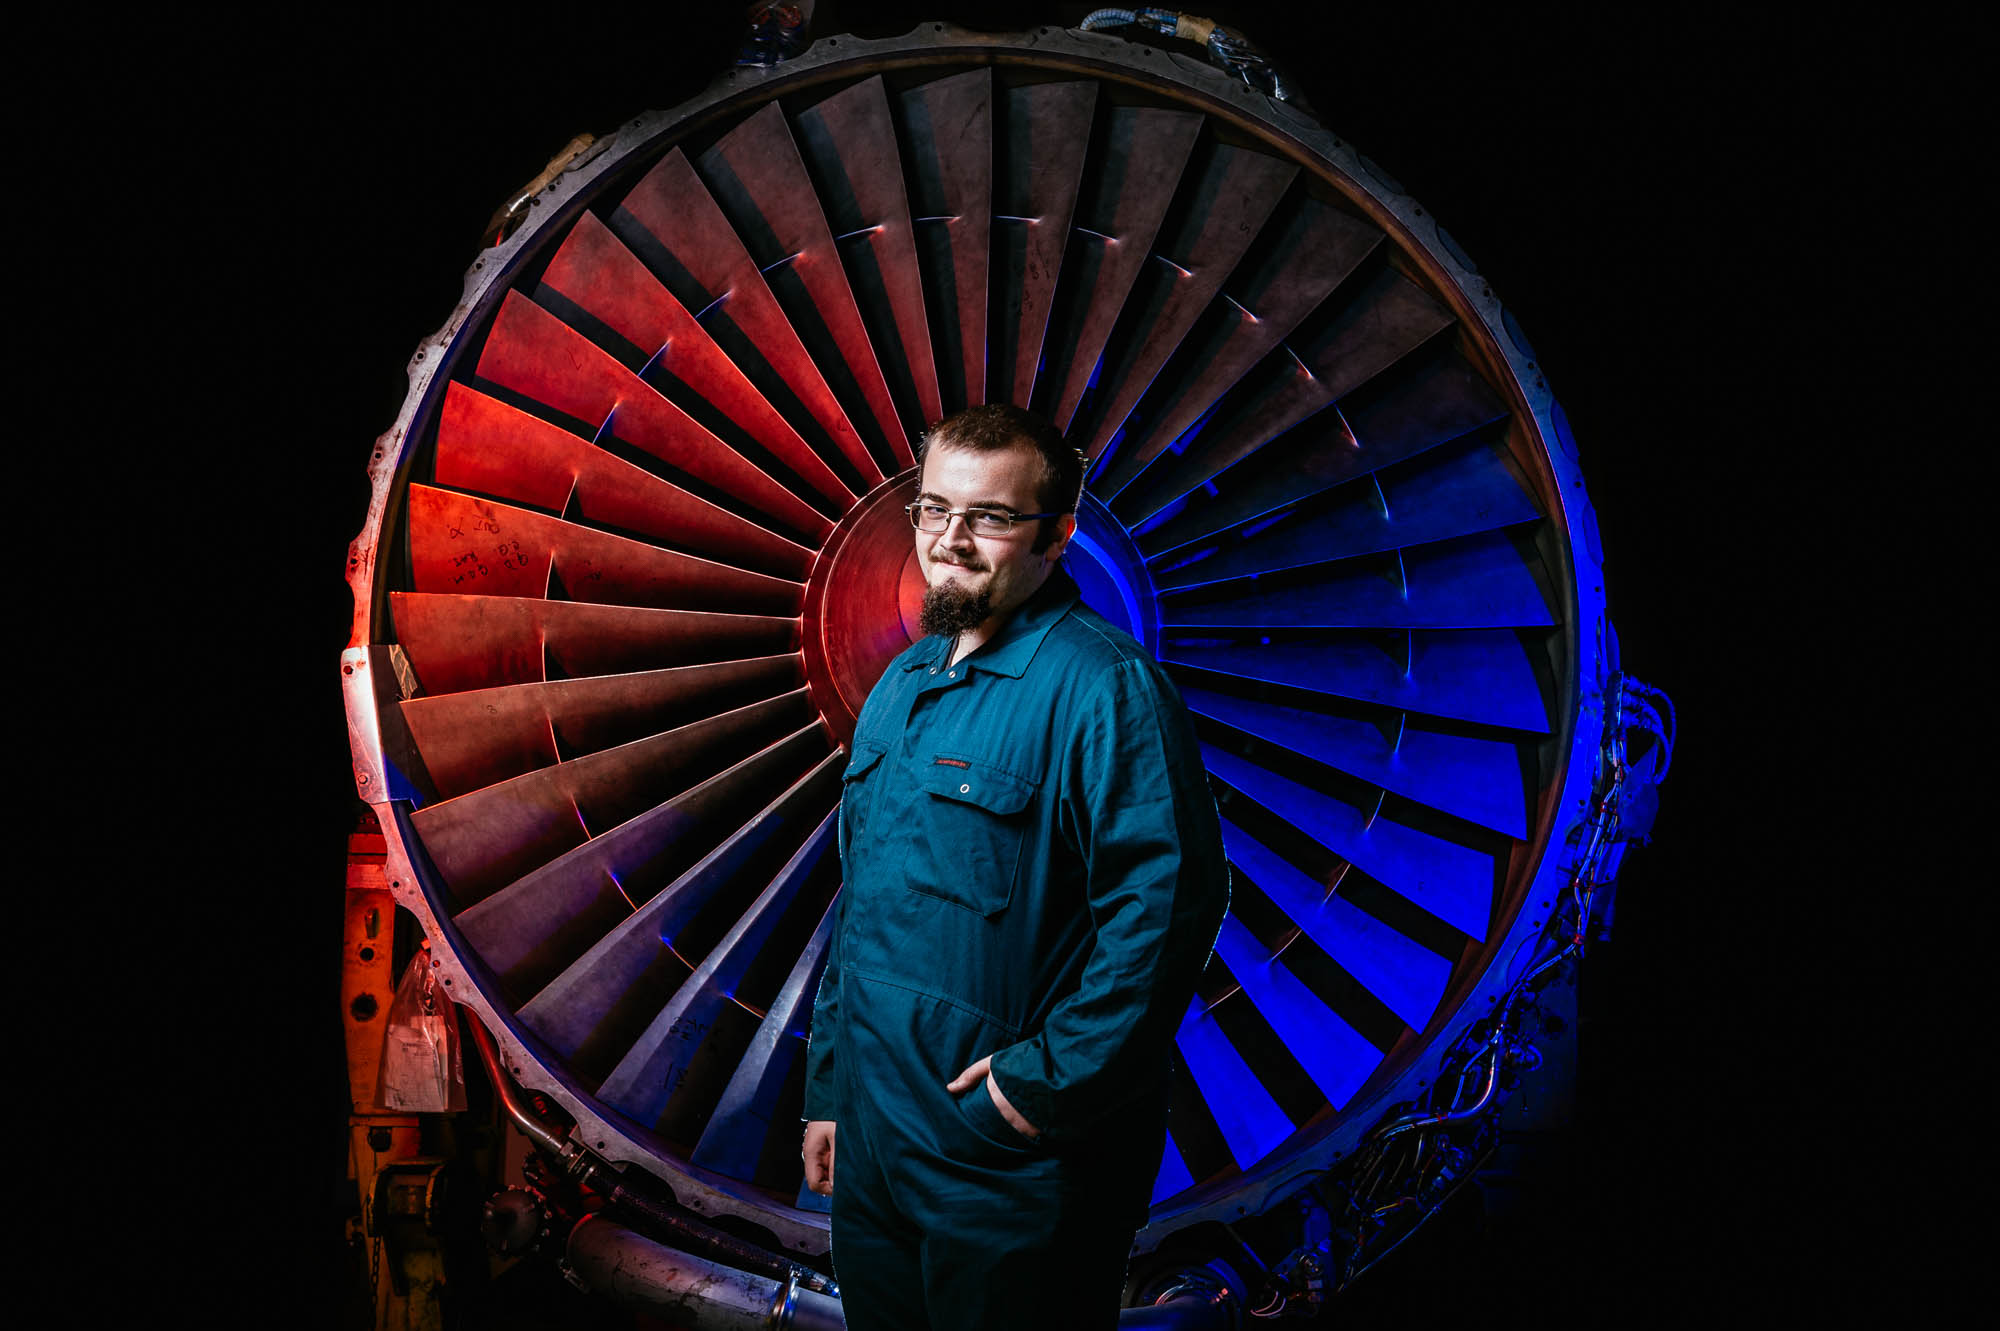 A photo of an engineering student standing in front of a jet propeller